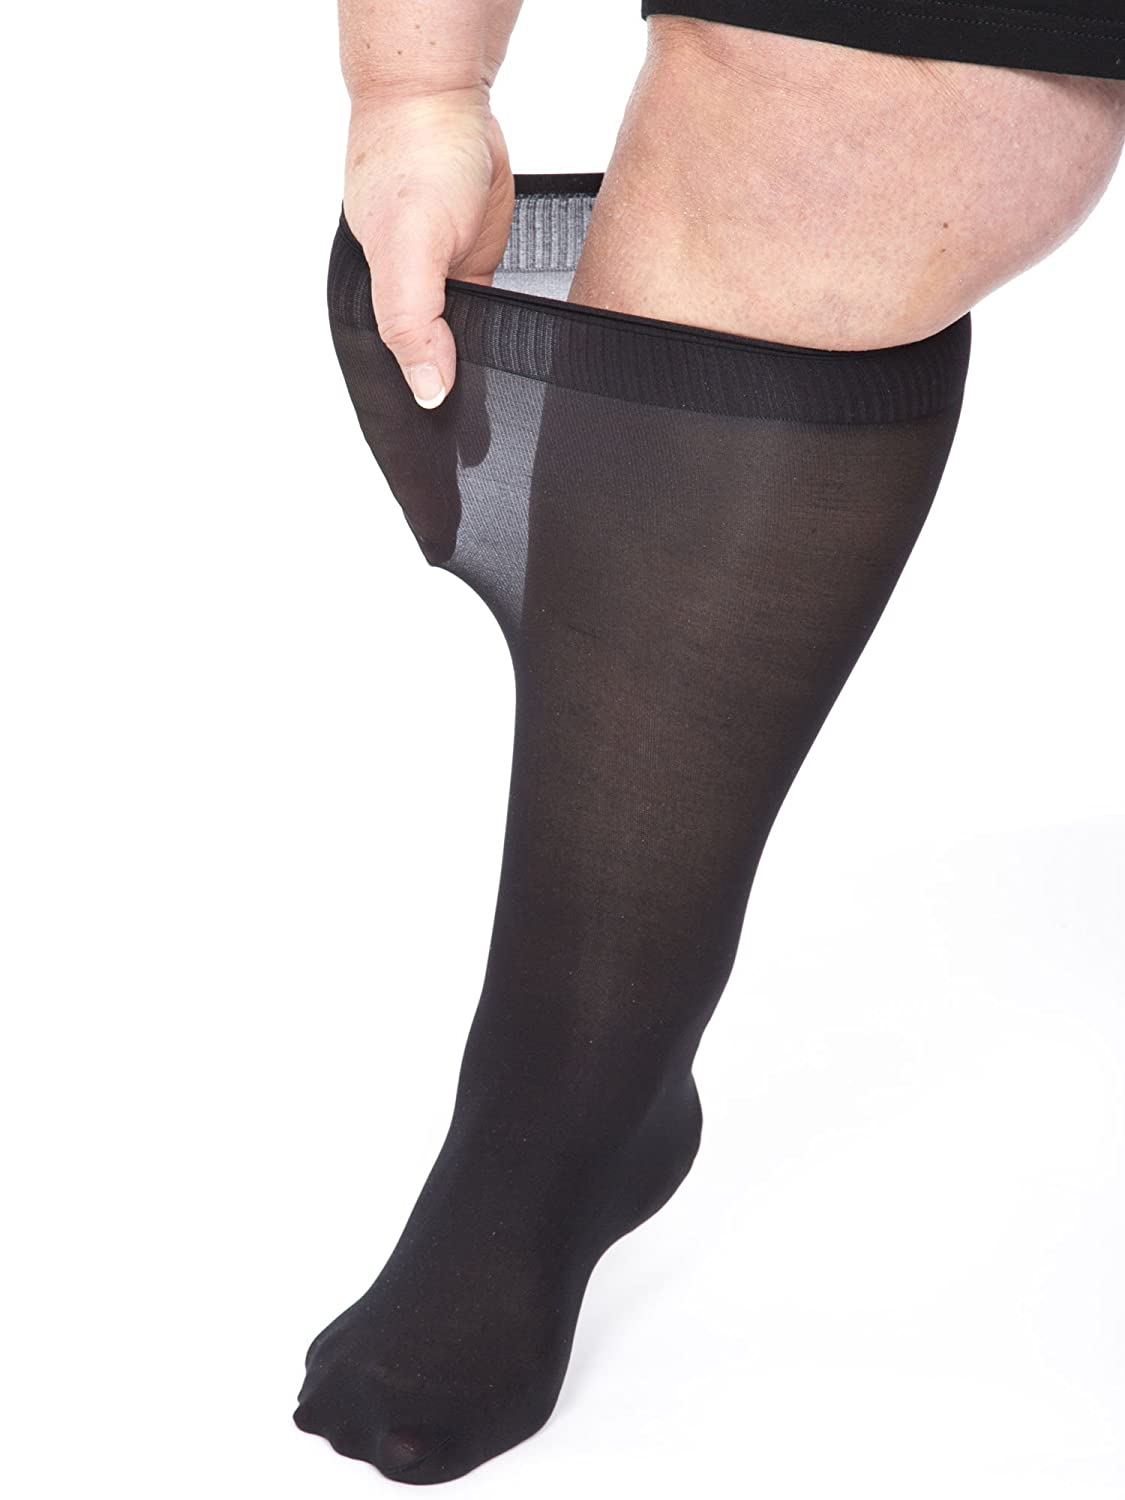 All Woman Extra Wide Knee-highs/Pop Socks Alber's 40 Denier Microfibre PACK OF 5 Anthracite) 014P5CANS2058